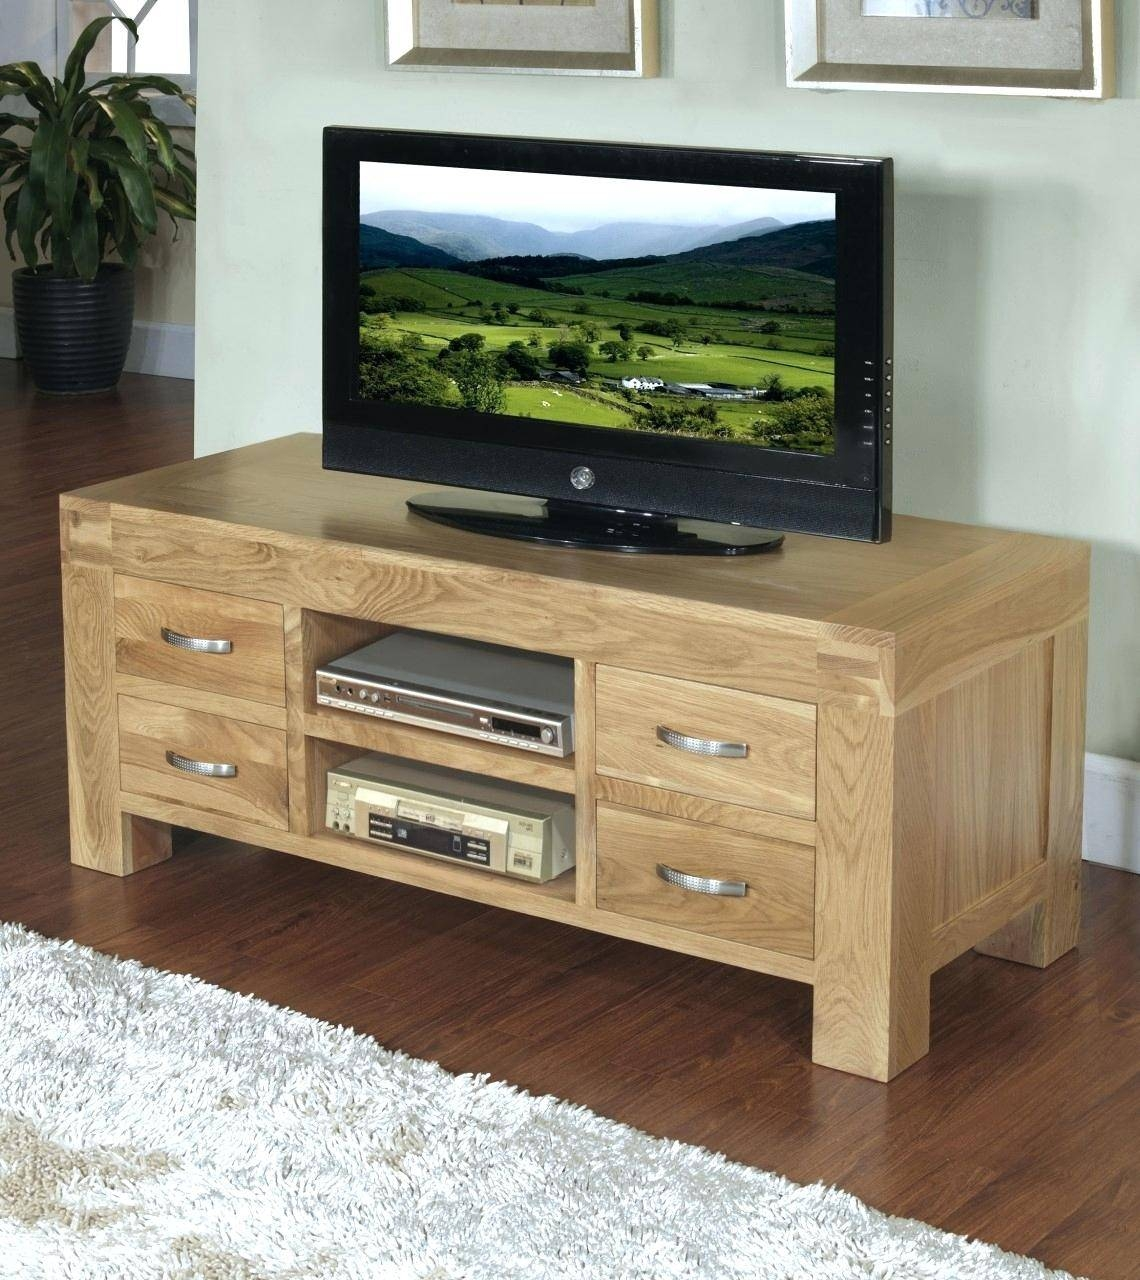 Tv Stand Cabinet Unit Large 16Mtr Black Gloss Stainless Modern regarding Corner Sideboard Units (Image 29 of 30)